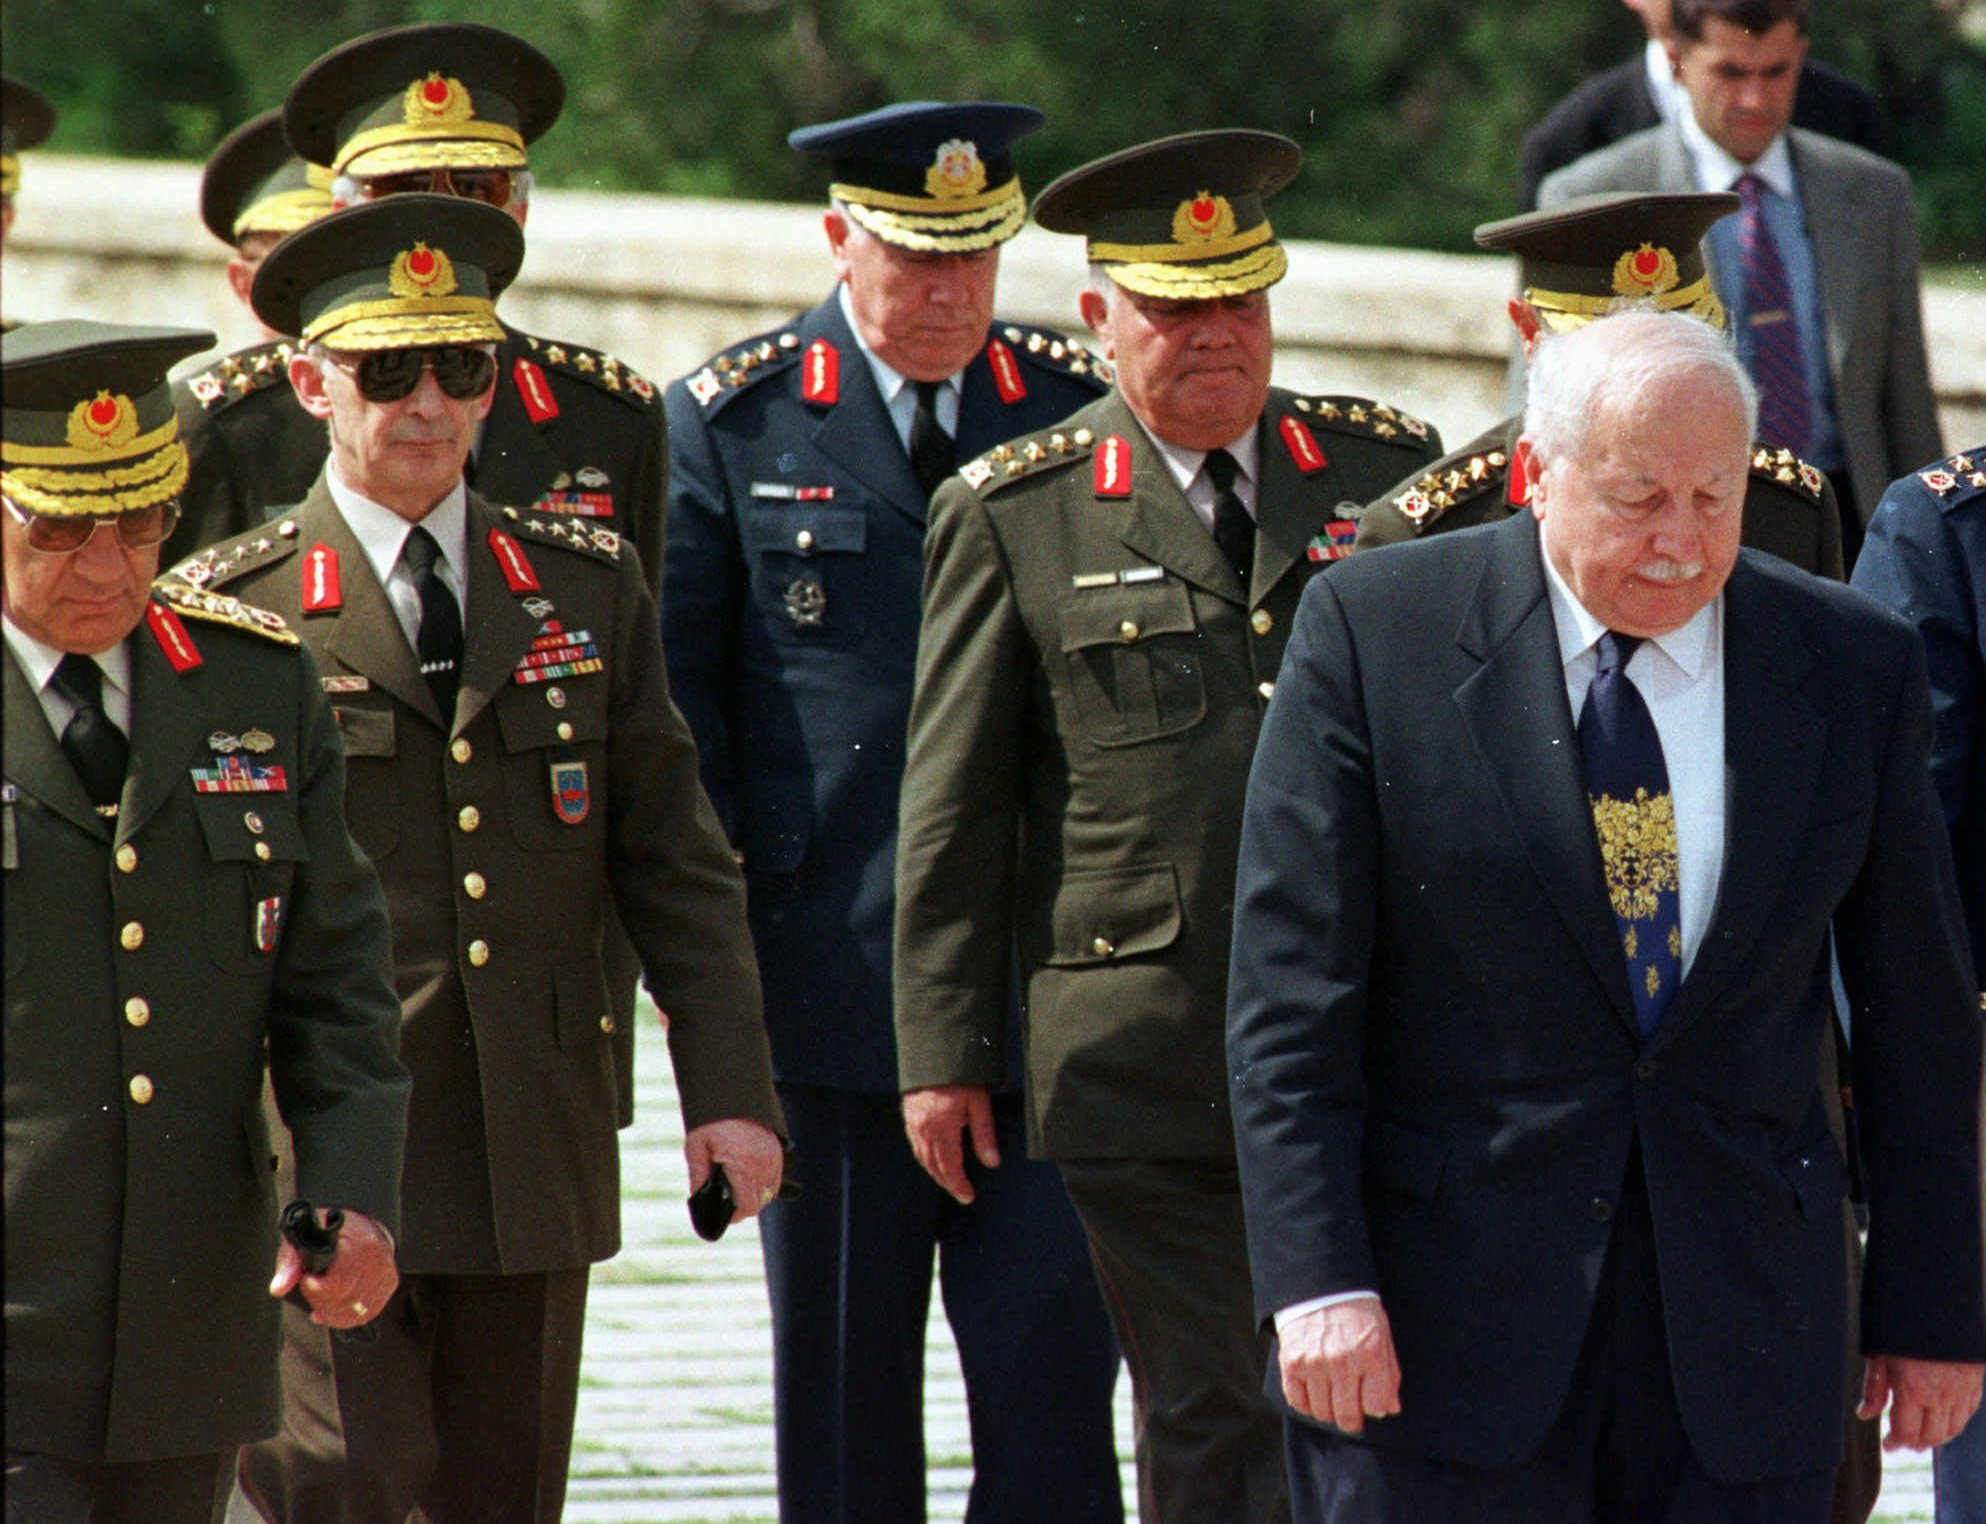 Turkish Prime Minister Necmettin Erbakan, (R), and the country's top generals watch their steps as they walk together to the mausoleum of Mustafa Kemal Atatürk, founder of Turkish Republic, May 26, 1997. (AP Photo)